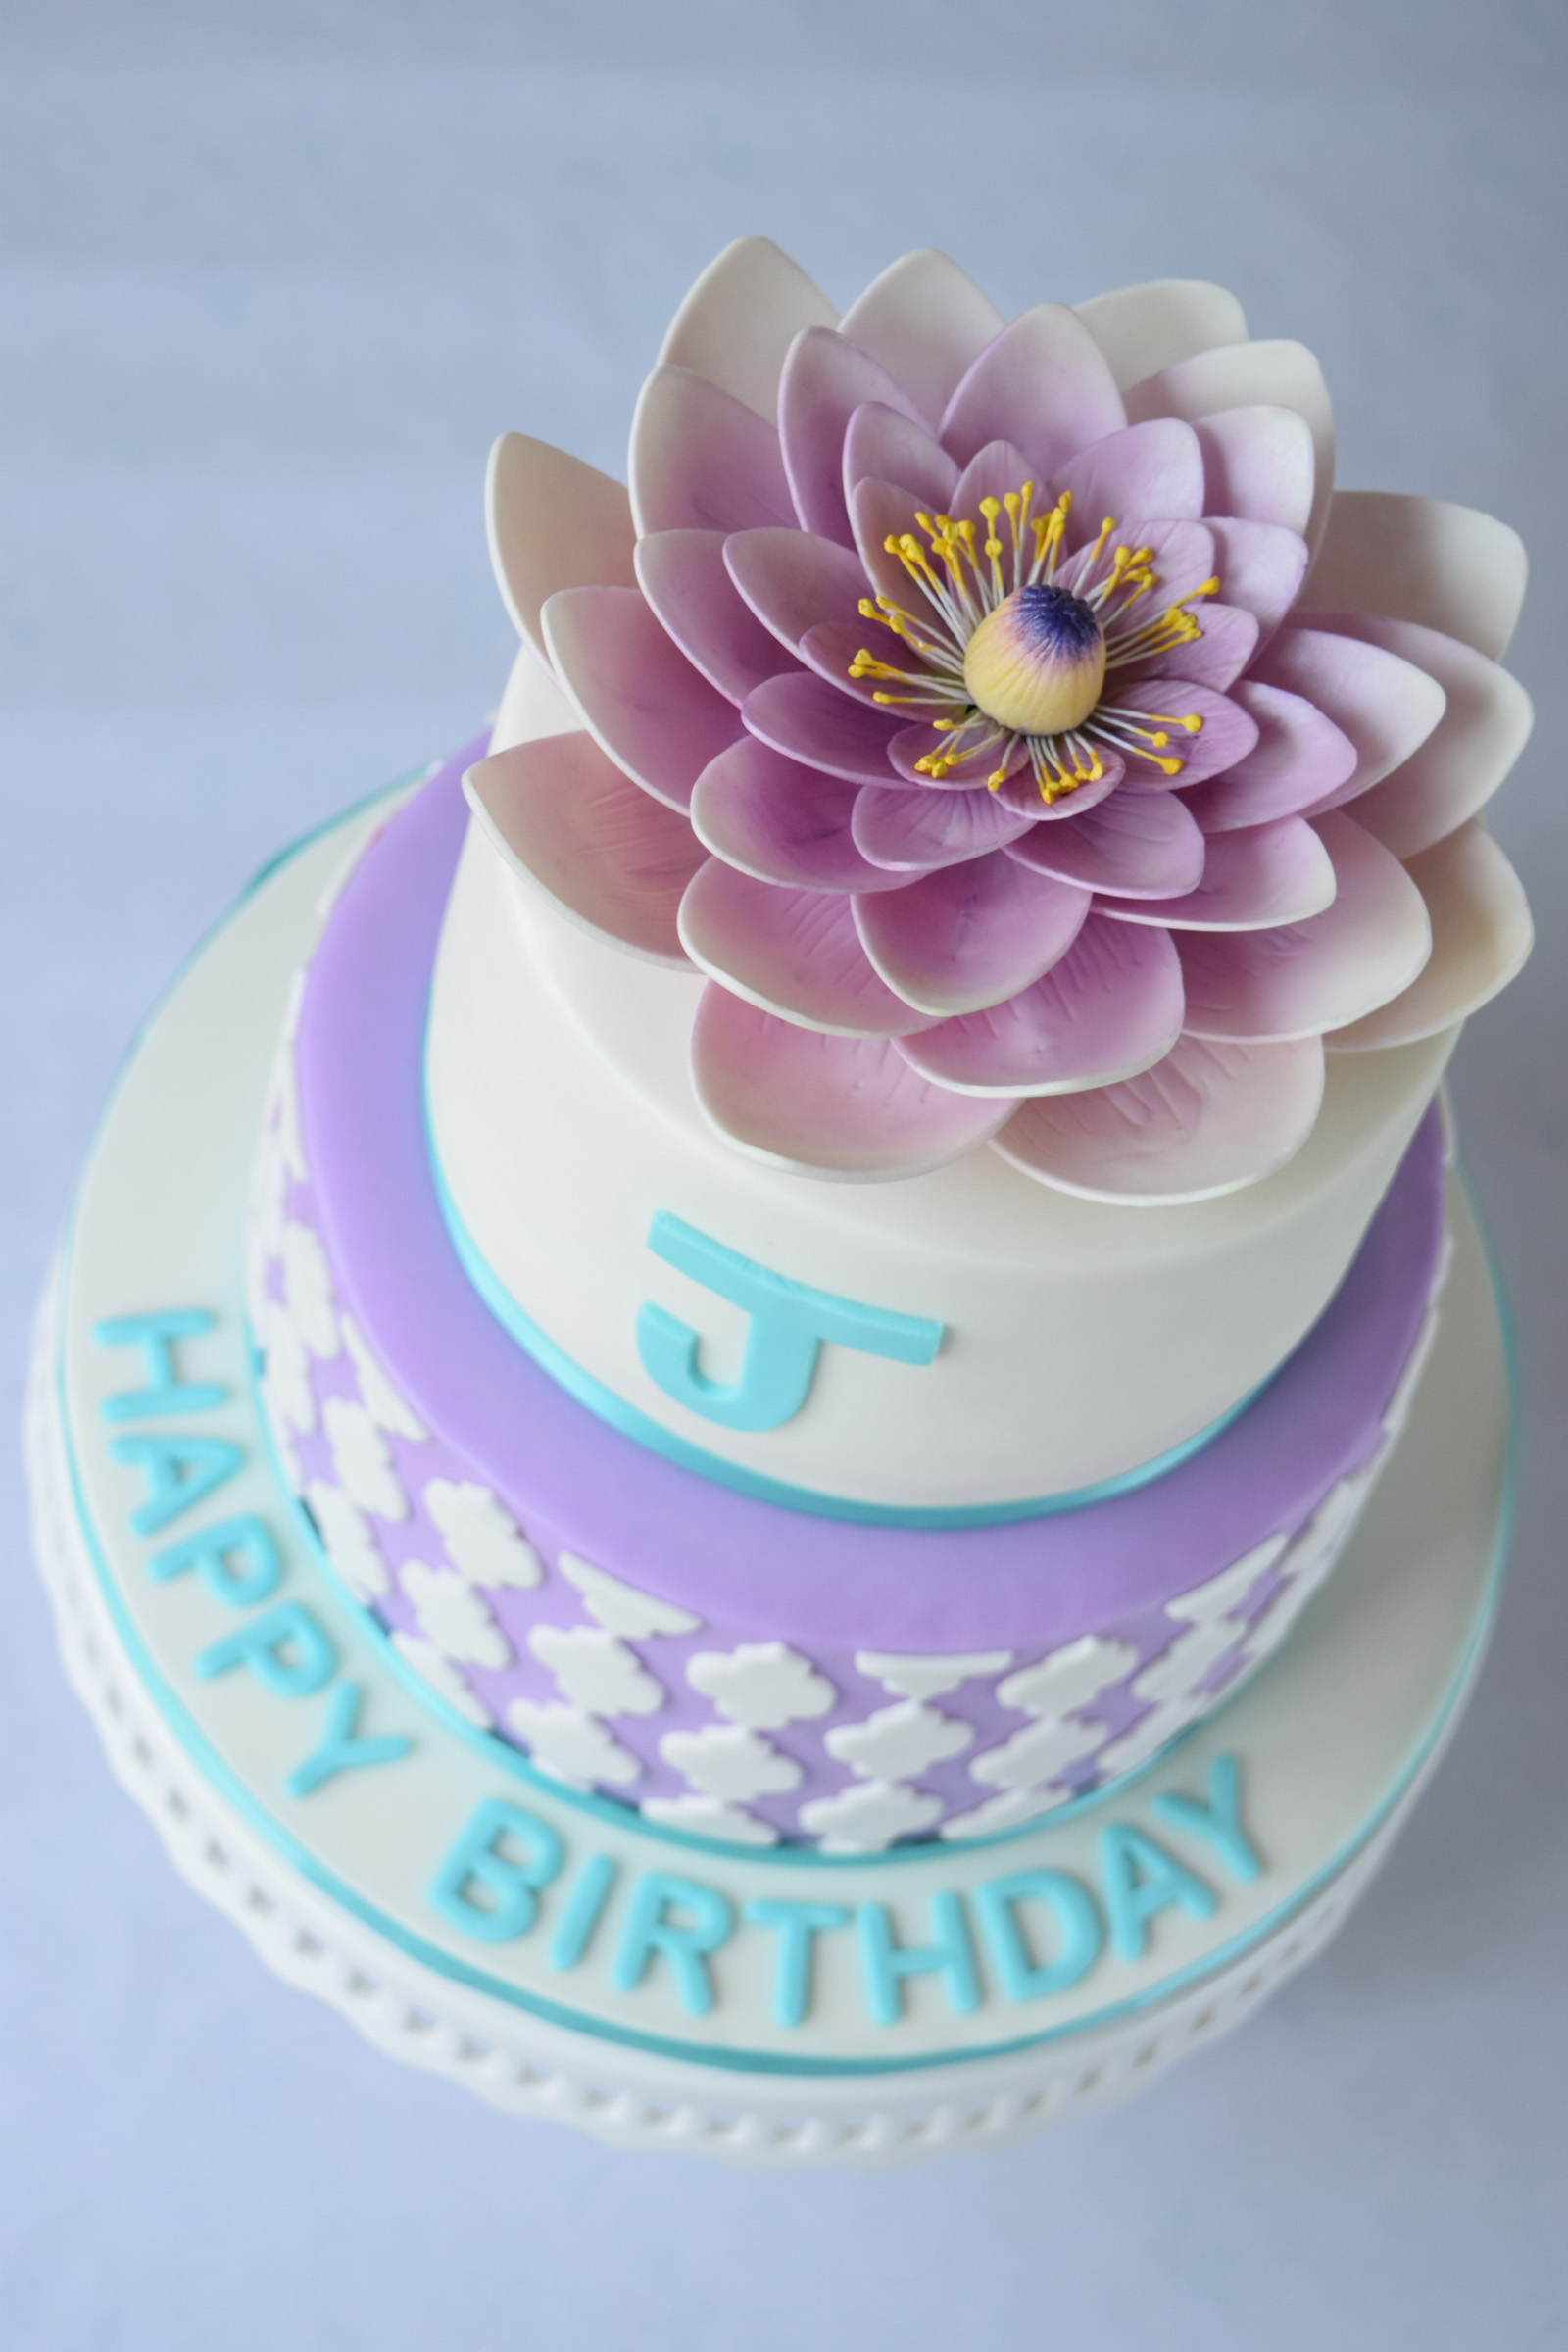 Party Cakes The Cake Flower